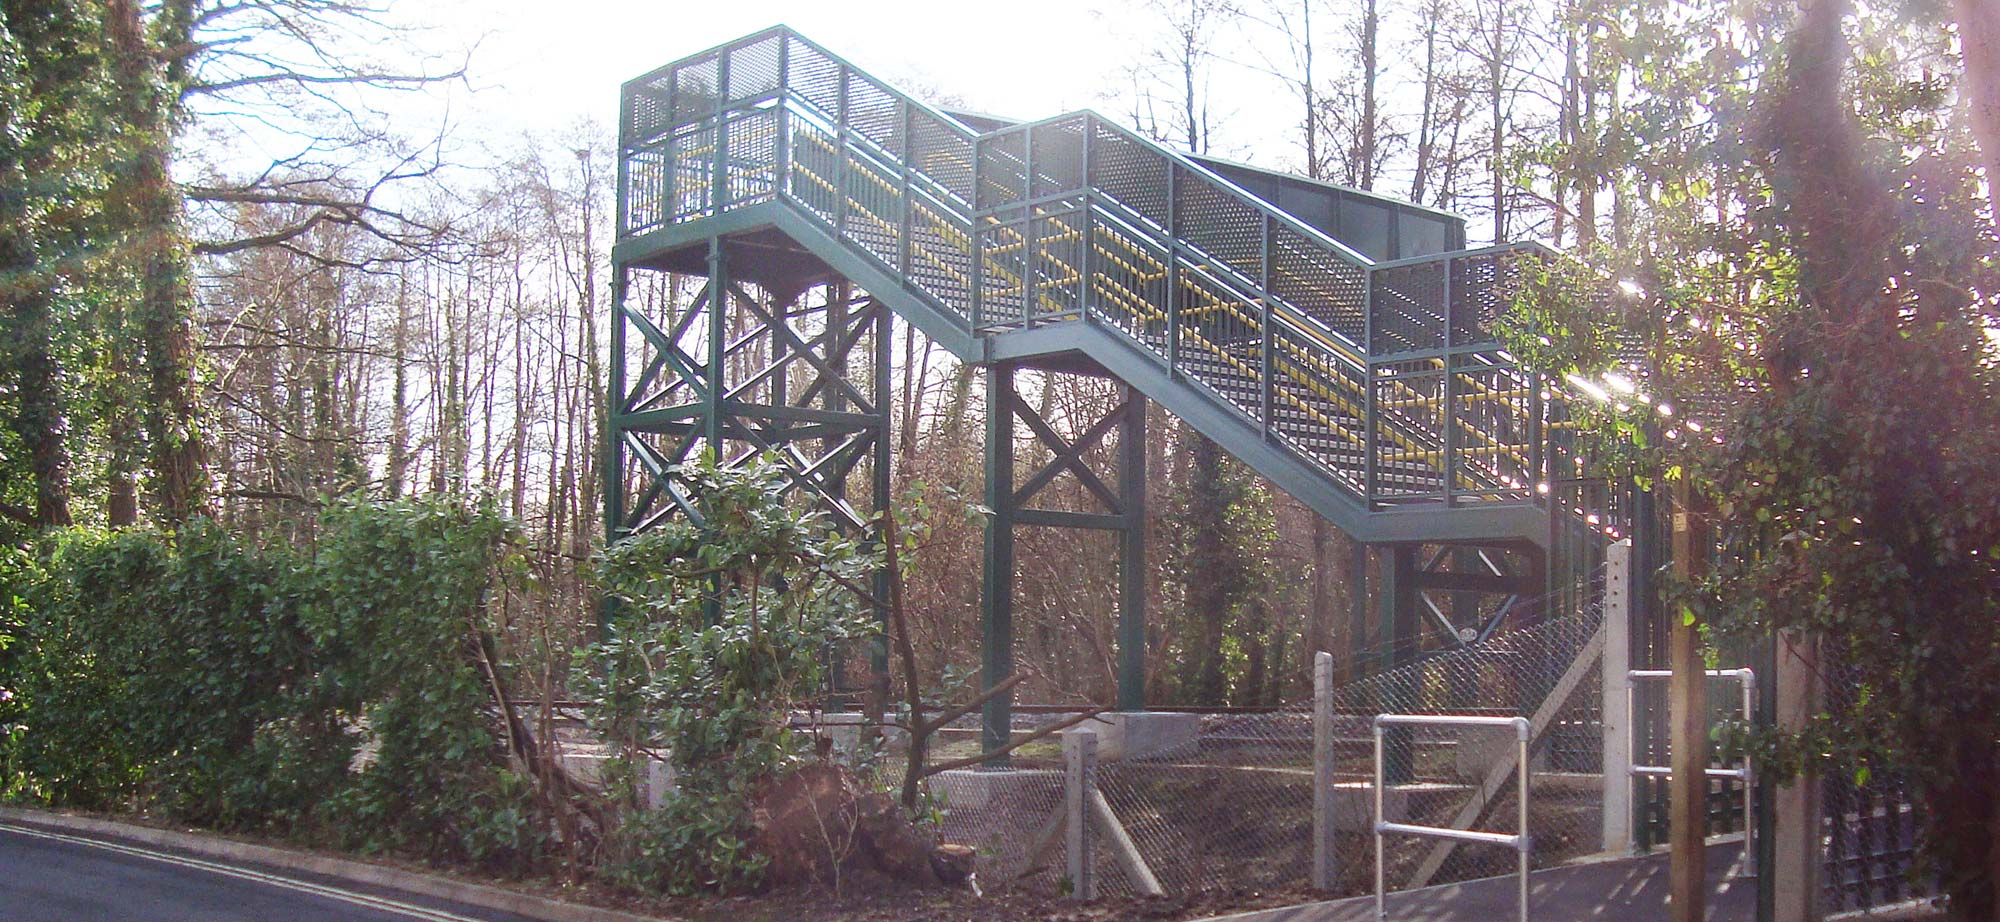 Footbridges and Footbridge Foundations designed, fabricated and installed by FLI Structures